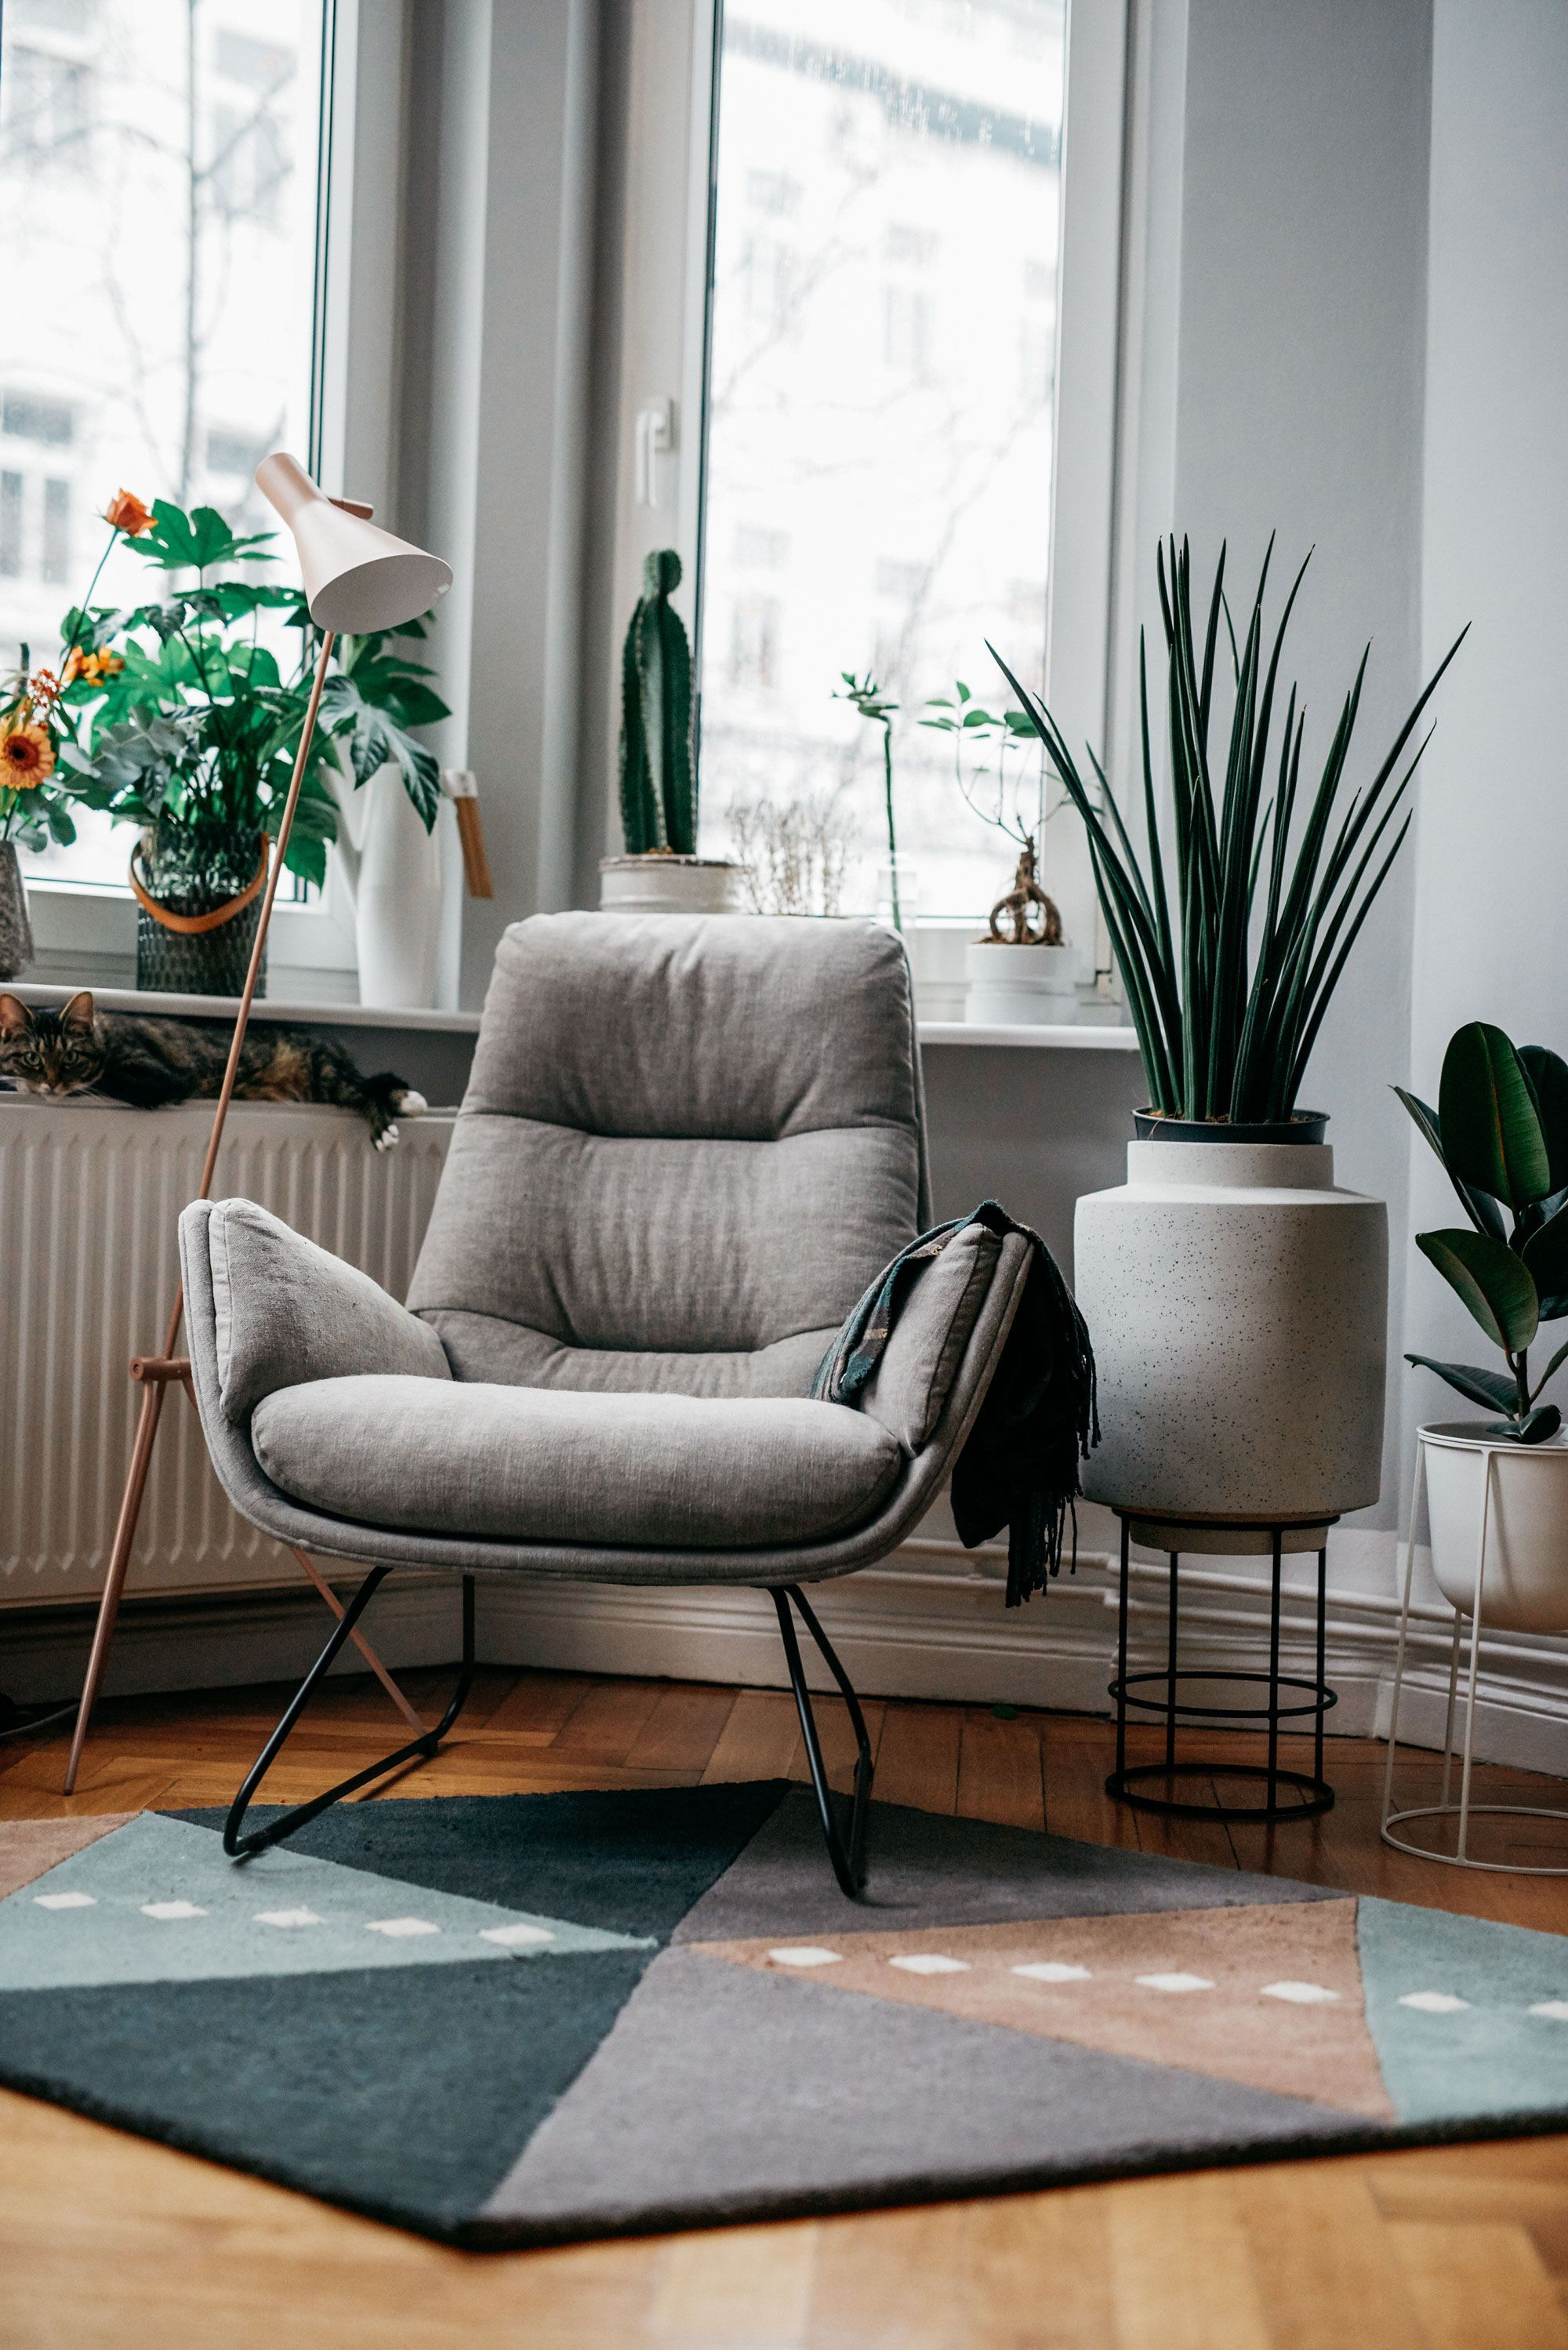 Home Decor Trends For The Summer That Are Calling For You Wohnung Wohnzimmer Sessel Design Leseecke